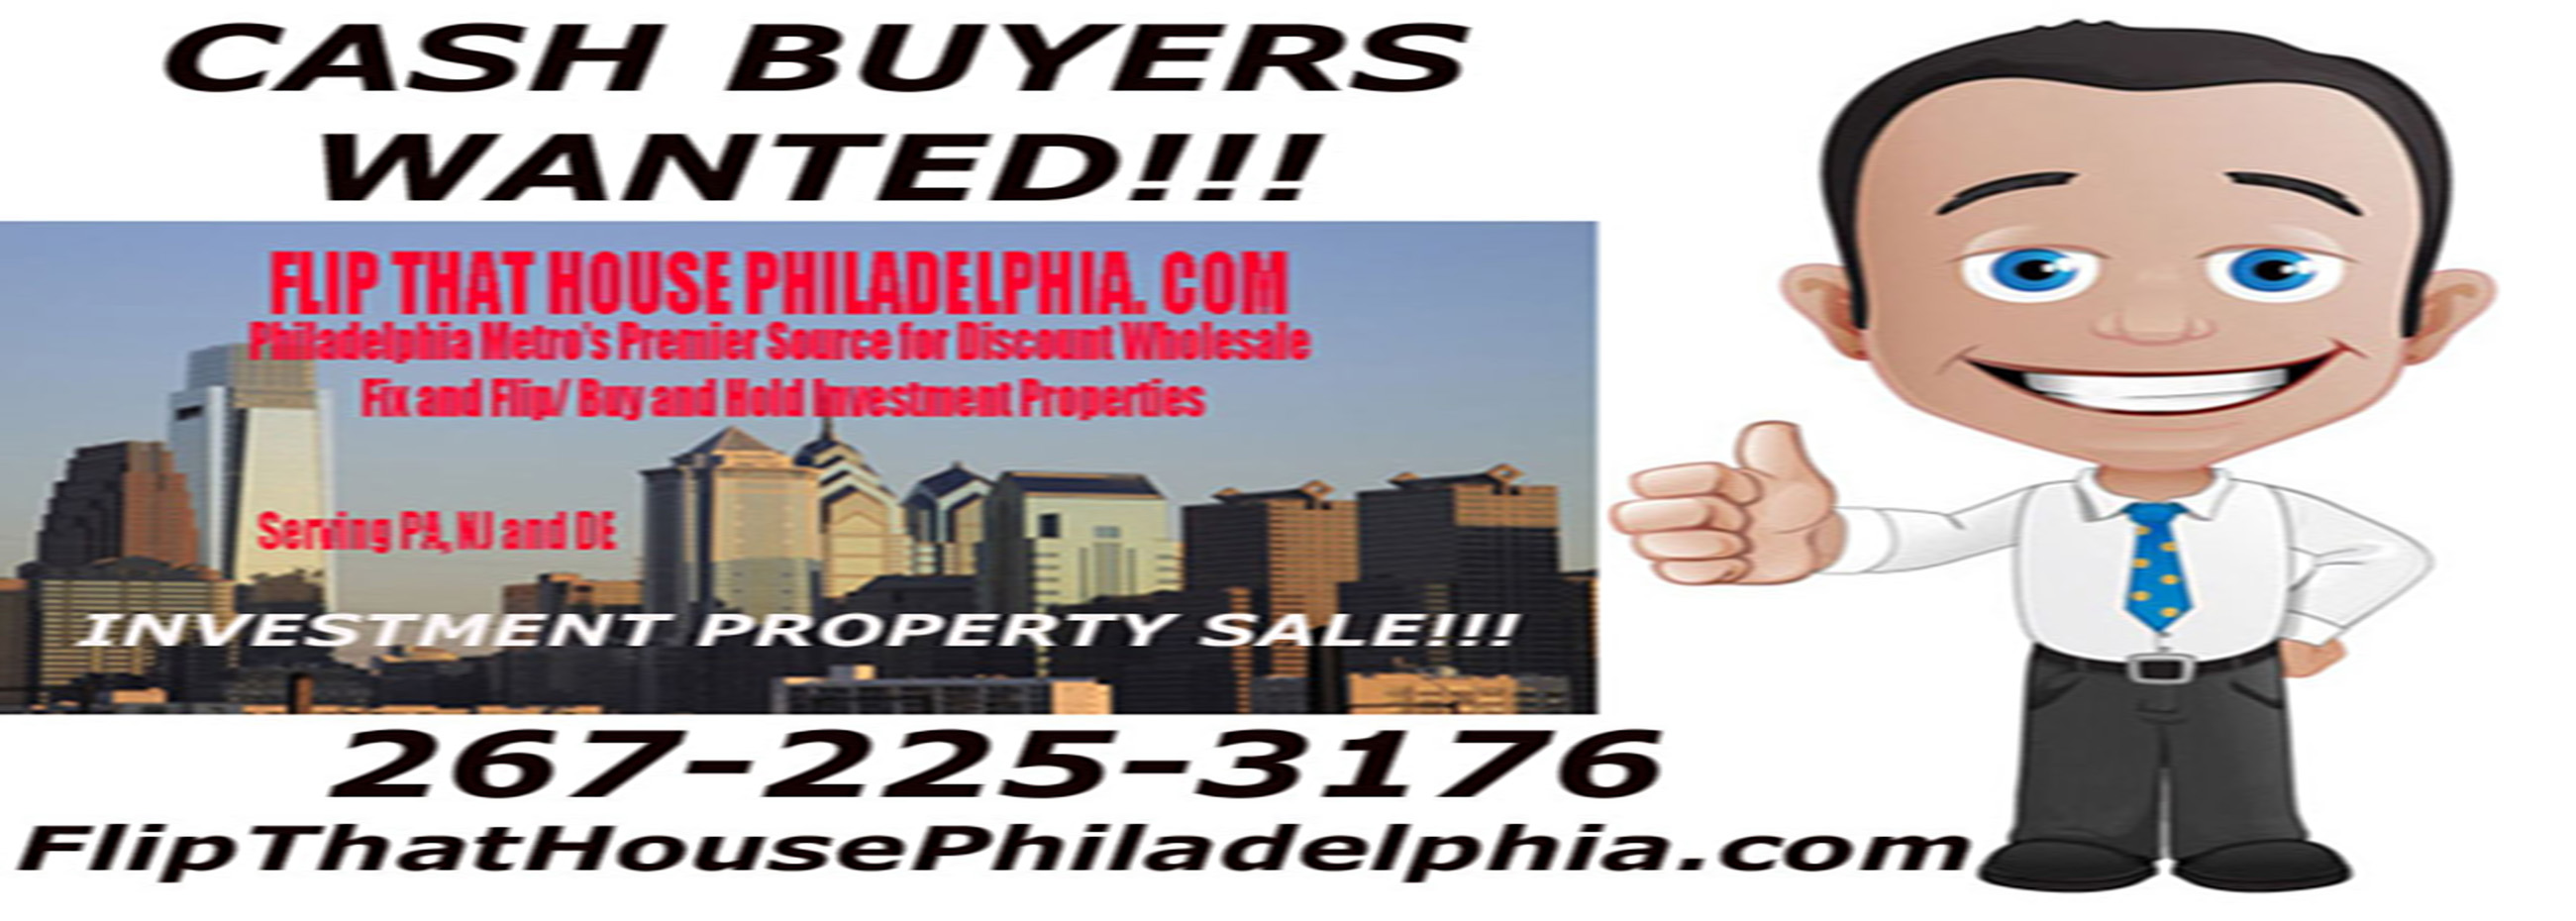 Buy discounted wholesale investment properties pa nj de for How to buy a house to flip